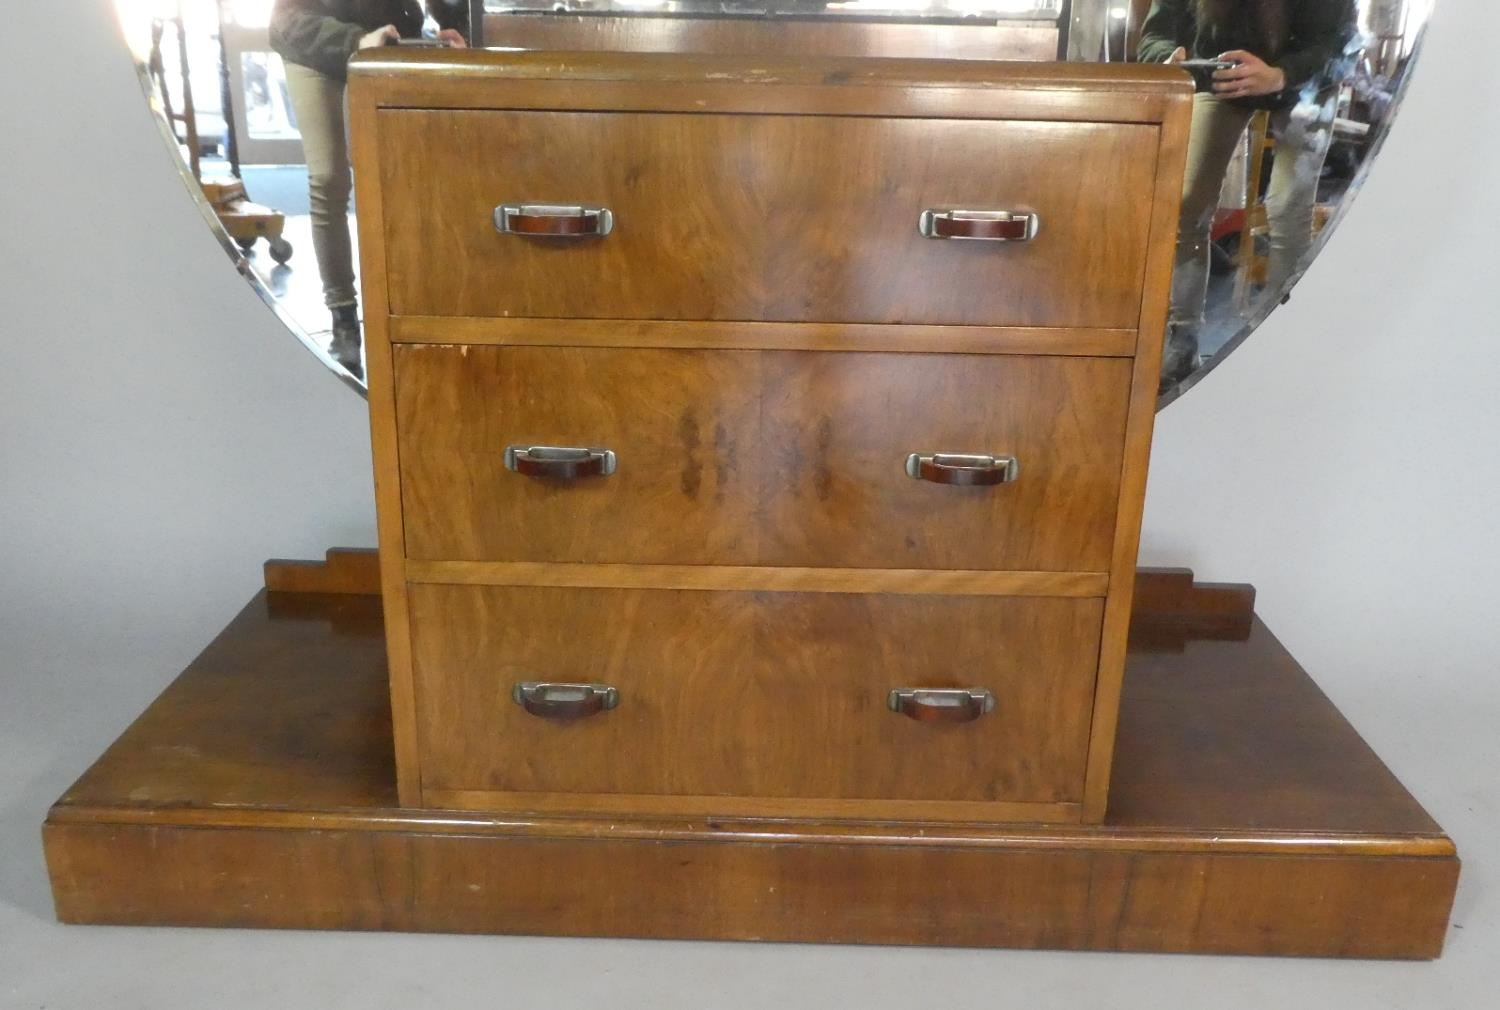 Lot 466 - An Art Deco Bedroom Dressing Chest with Three Centre Drawers and Plinth Base, Three Section Circular